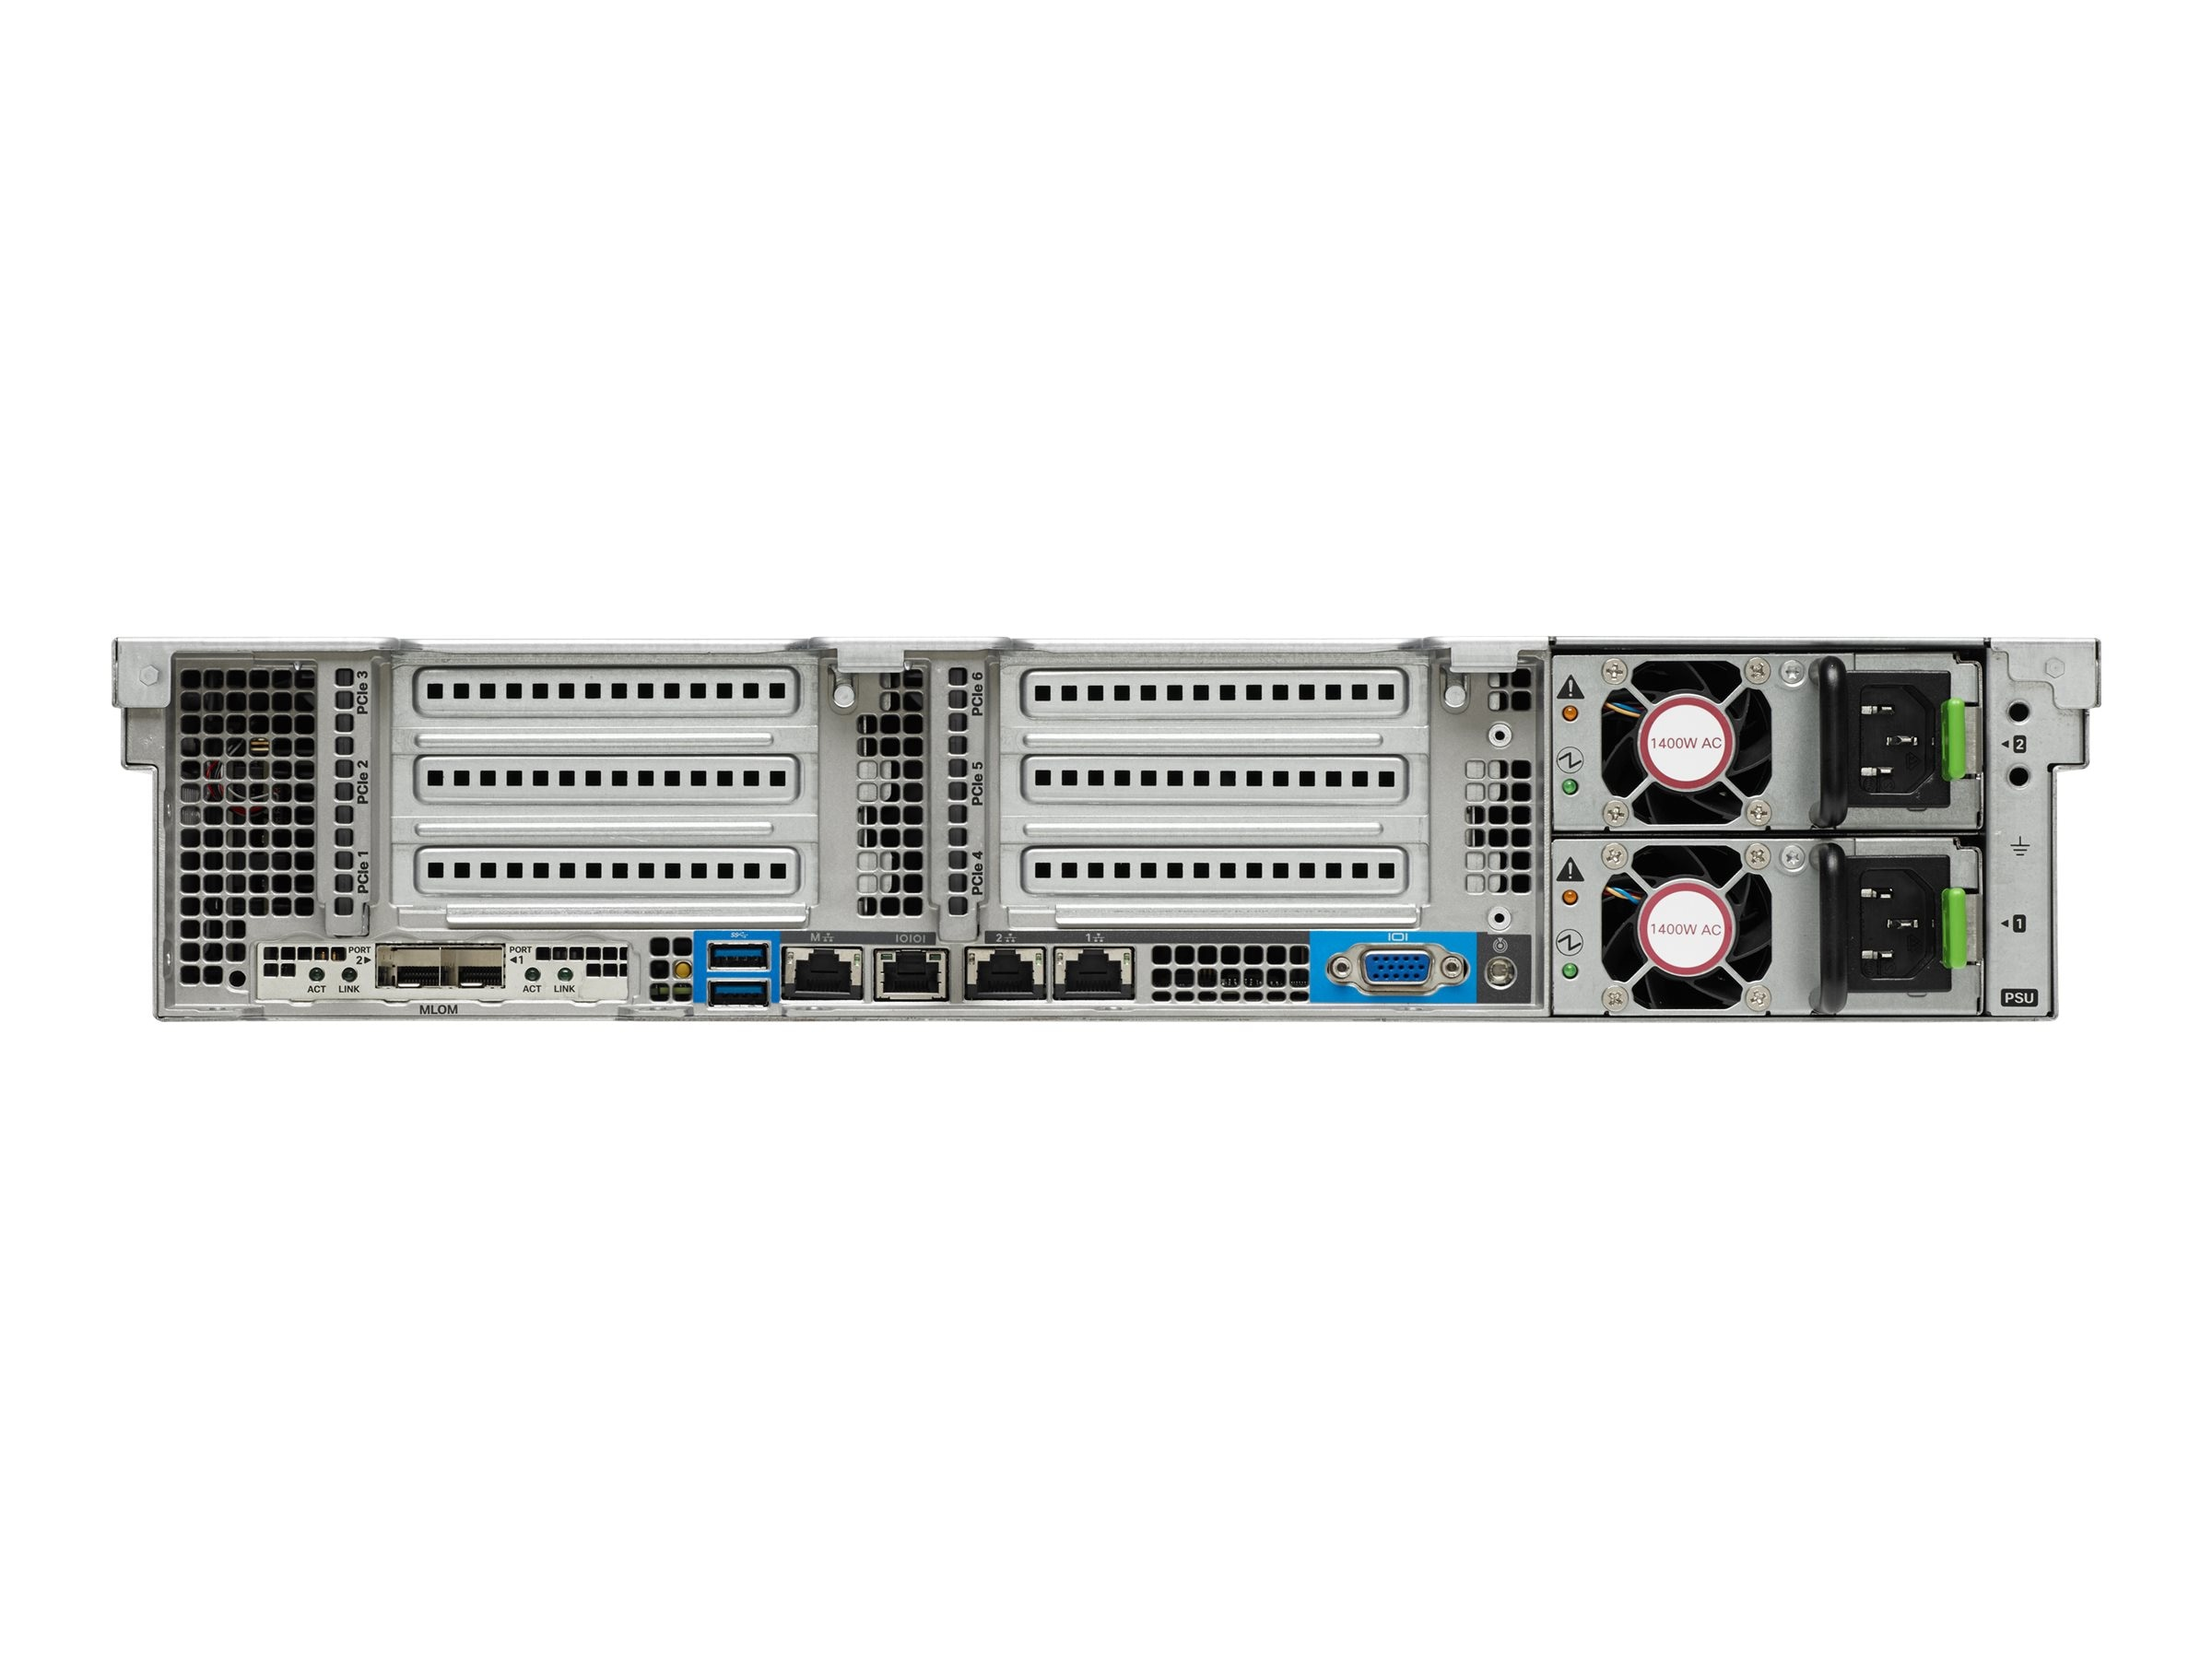 Cisco UCS-SP-C240M4-B-S2 Image 6